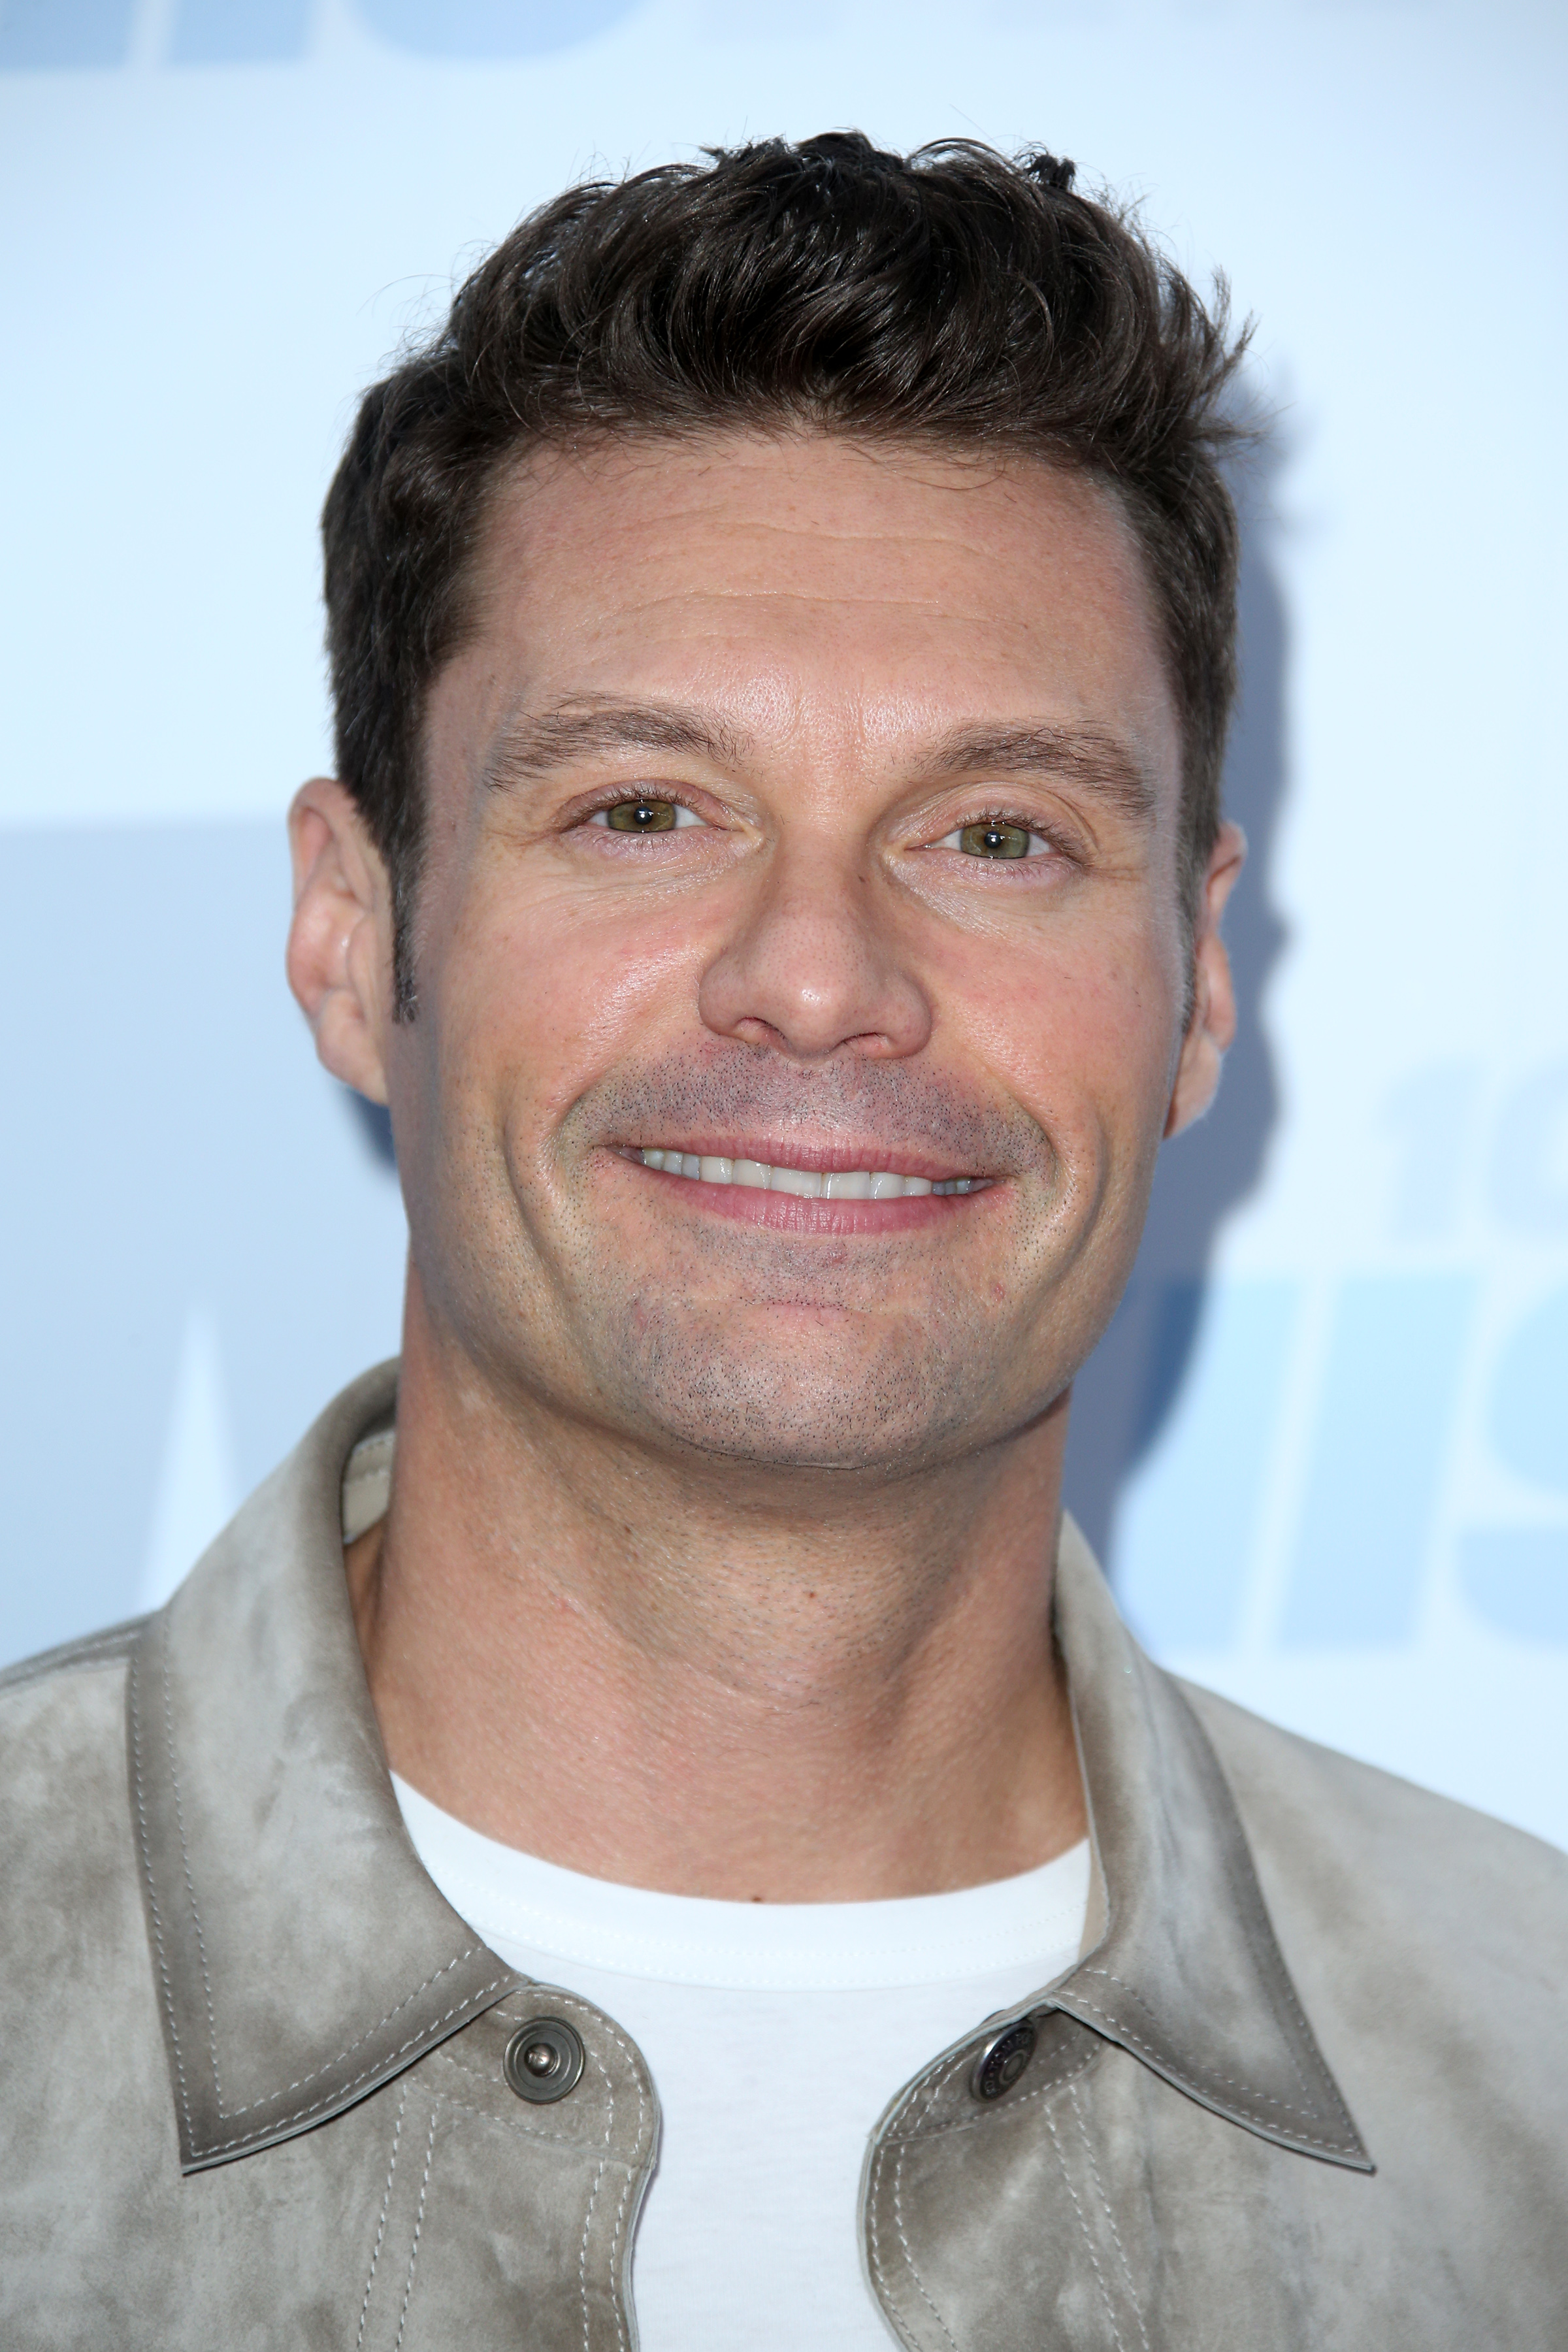 102.7 KIIS FM's Wango Tango 2016 - Arrivals                                                                      Featuring: Ryan Seacrest                                   Where: Carson, California, United States                                   When: 14 May 2016                                   Credit: FayesVision/WENN.com